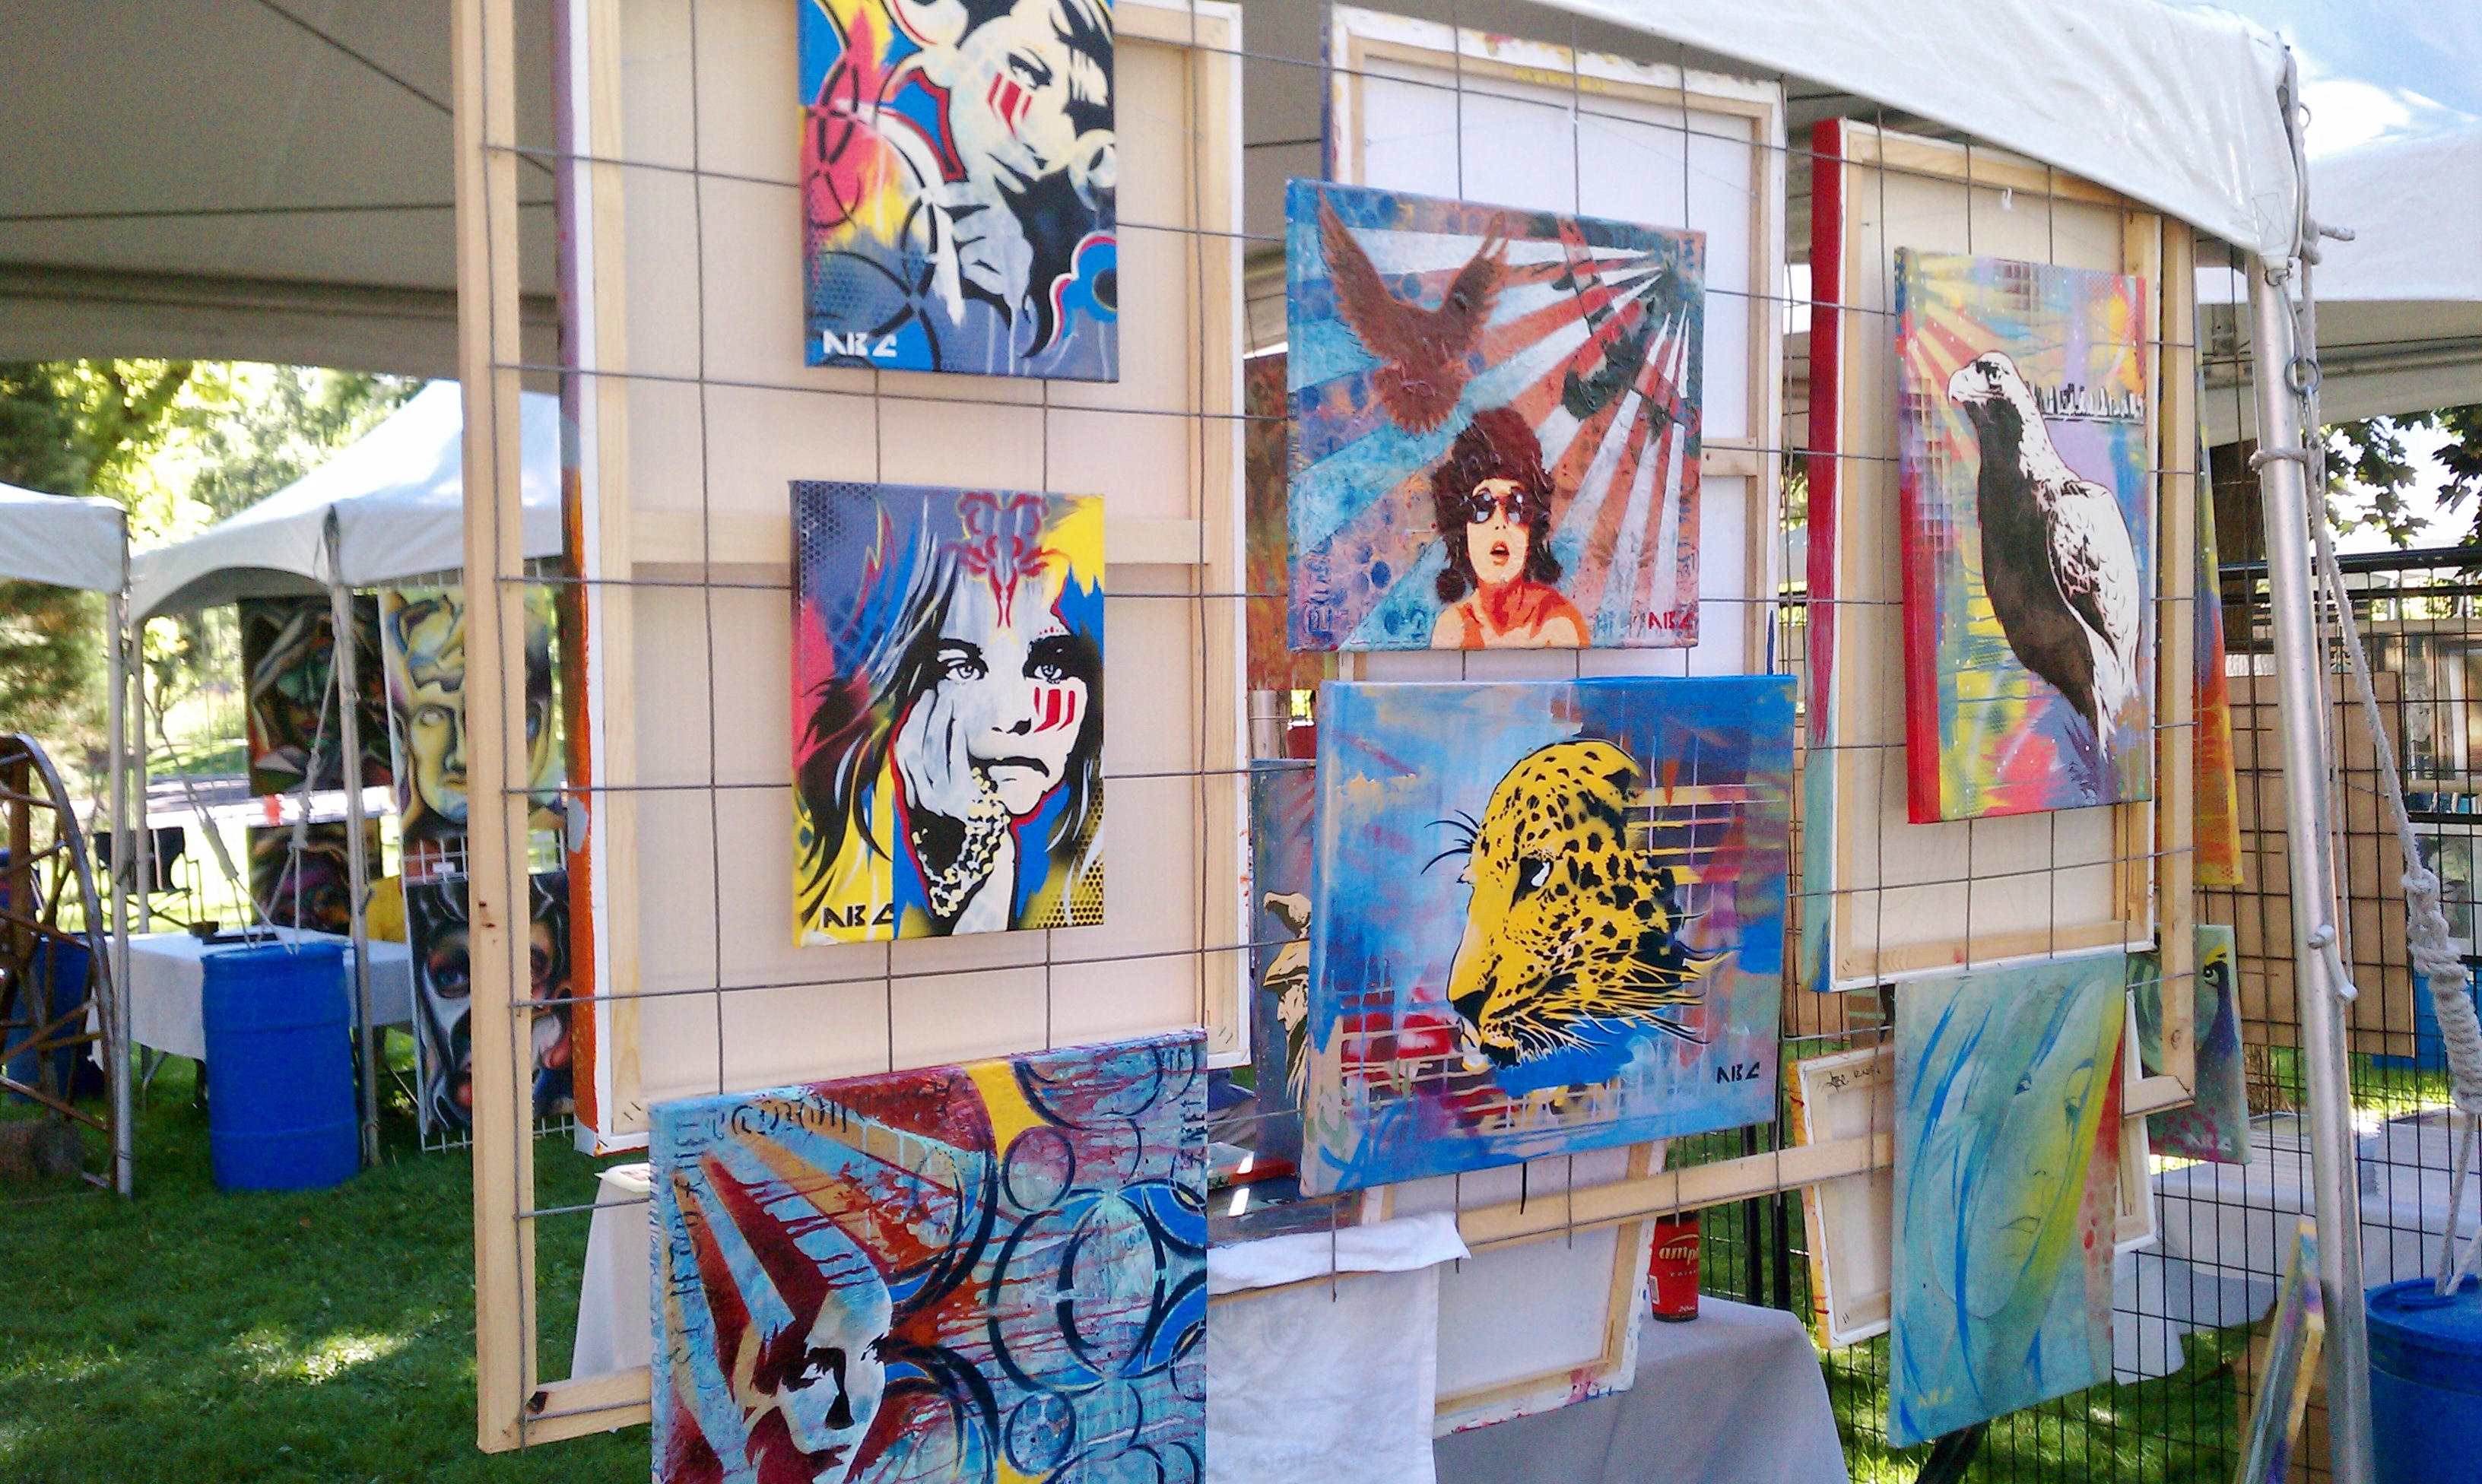 Visual Art Blast, McKinley Arts